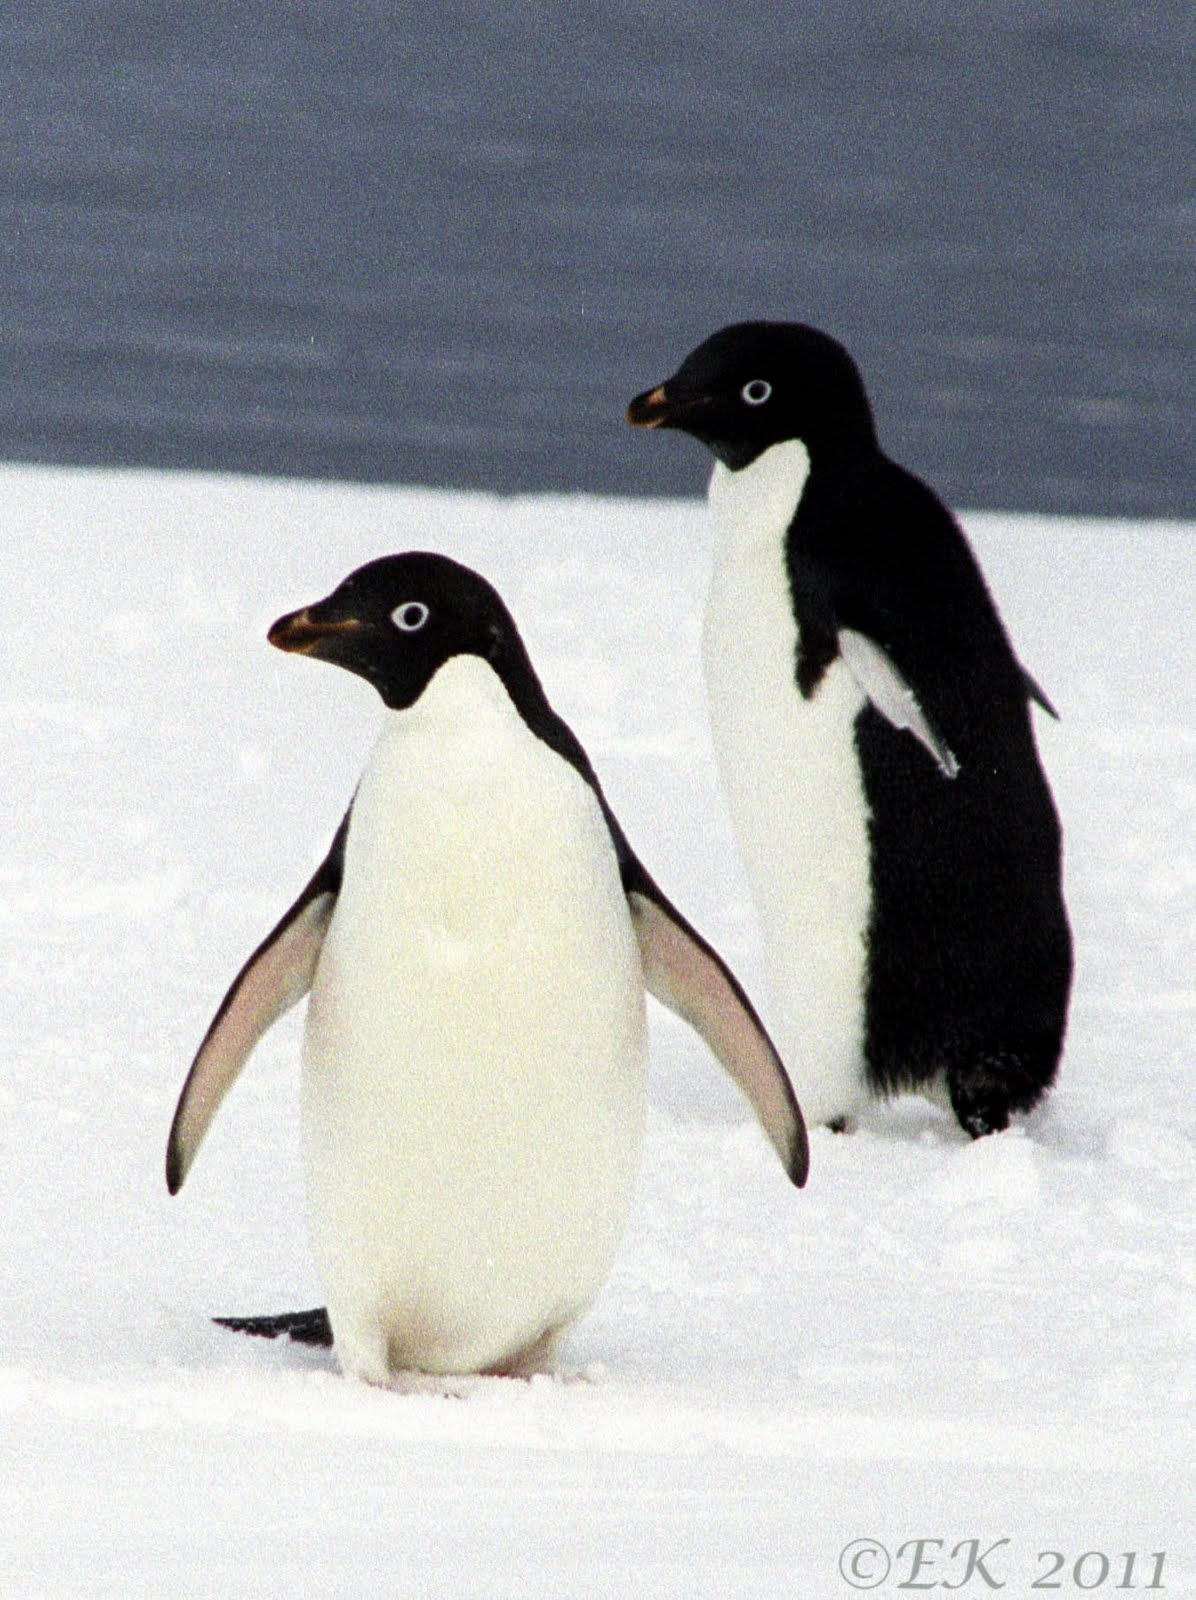 OK  enough with these scary animals  Cute - Give me something cute Cute Adelie Penguin